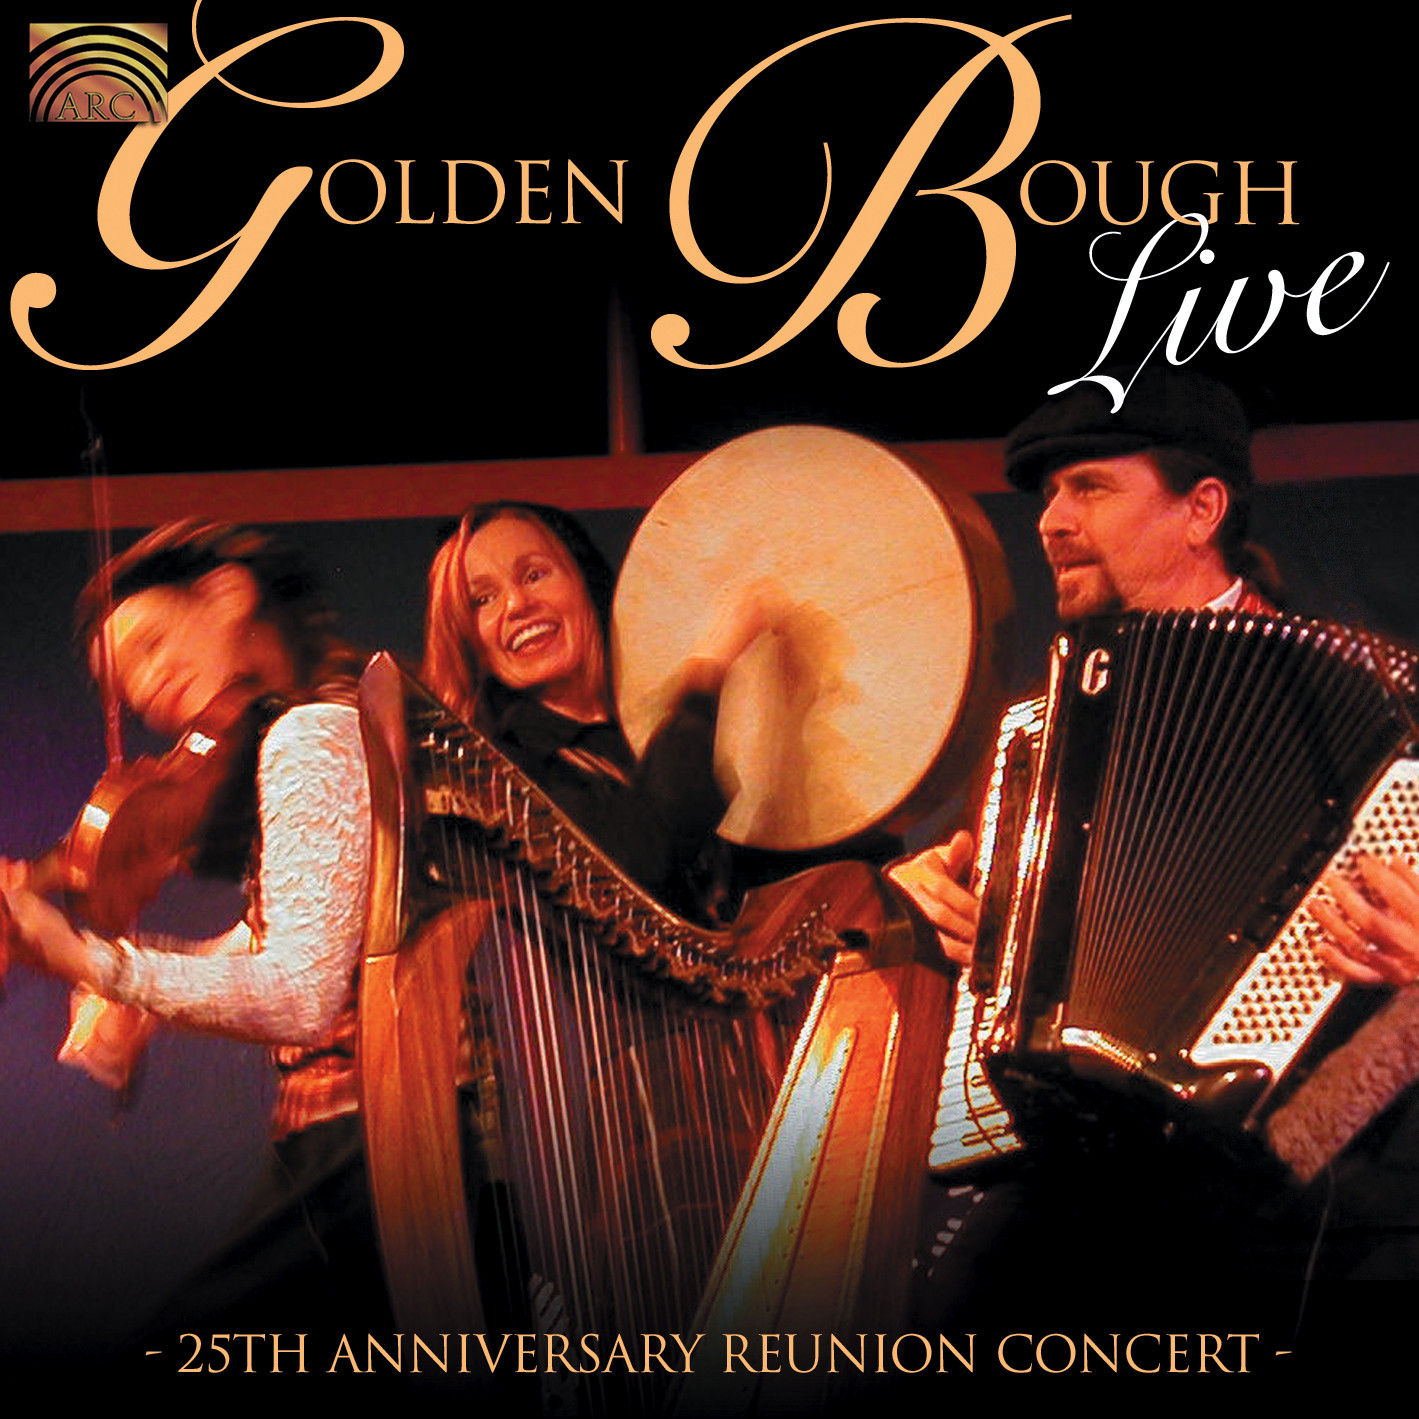 EUCD2008 Golden Bough Live - 25th Anniversary Reunion Concert